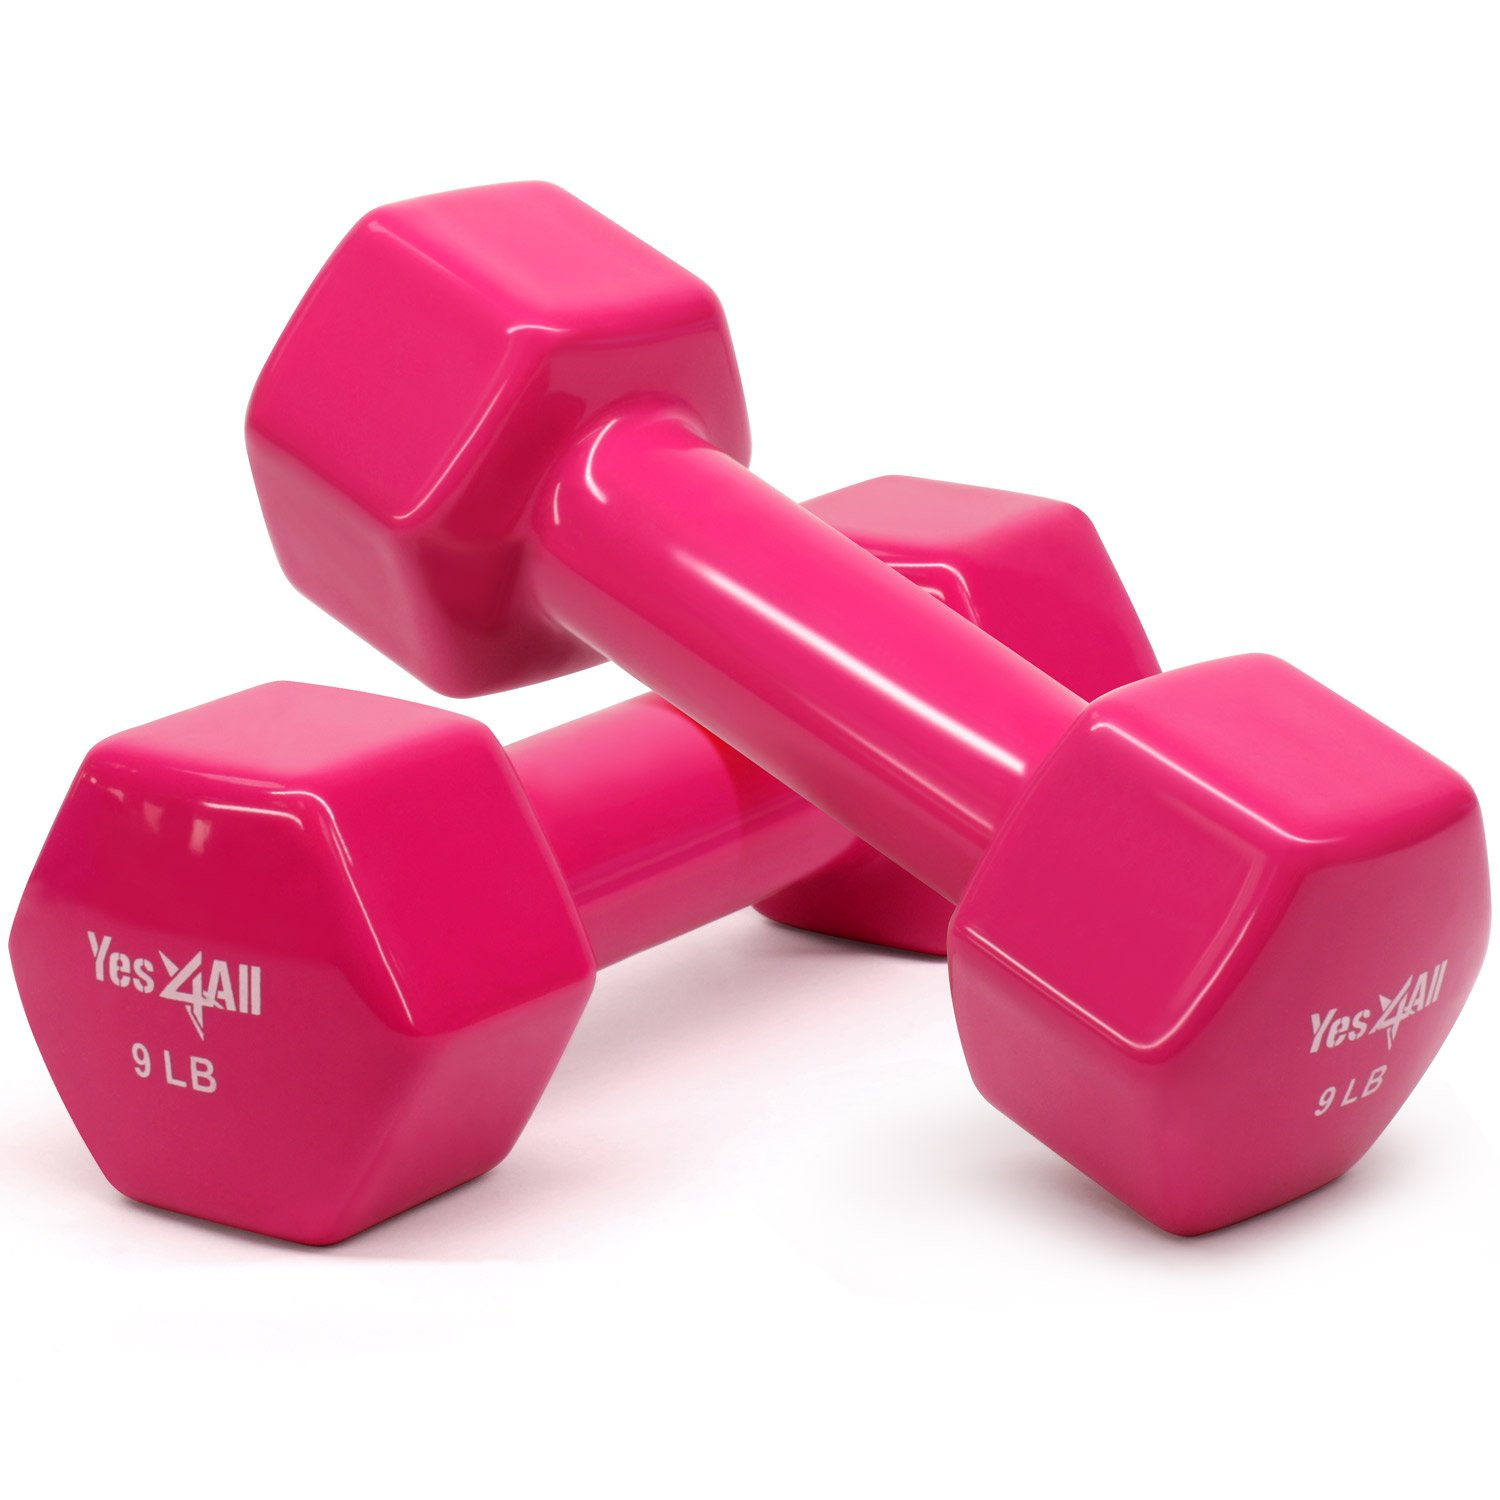 Yes4All Deluxe Vinyl Coated Cast Iron Dumbbell Weights - PVC Dumbbell Sets for a Total Body Workout (Sets of 2, Hot Pink, 9lbs)